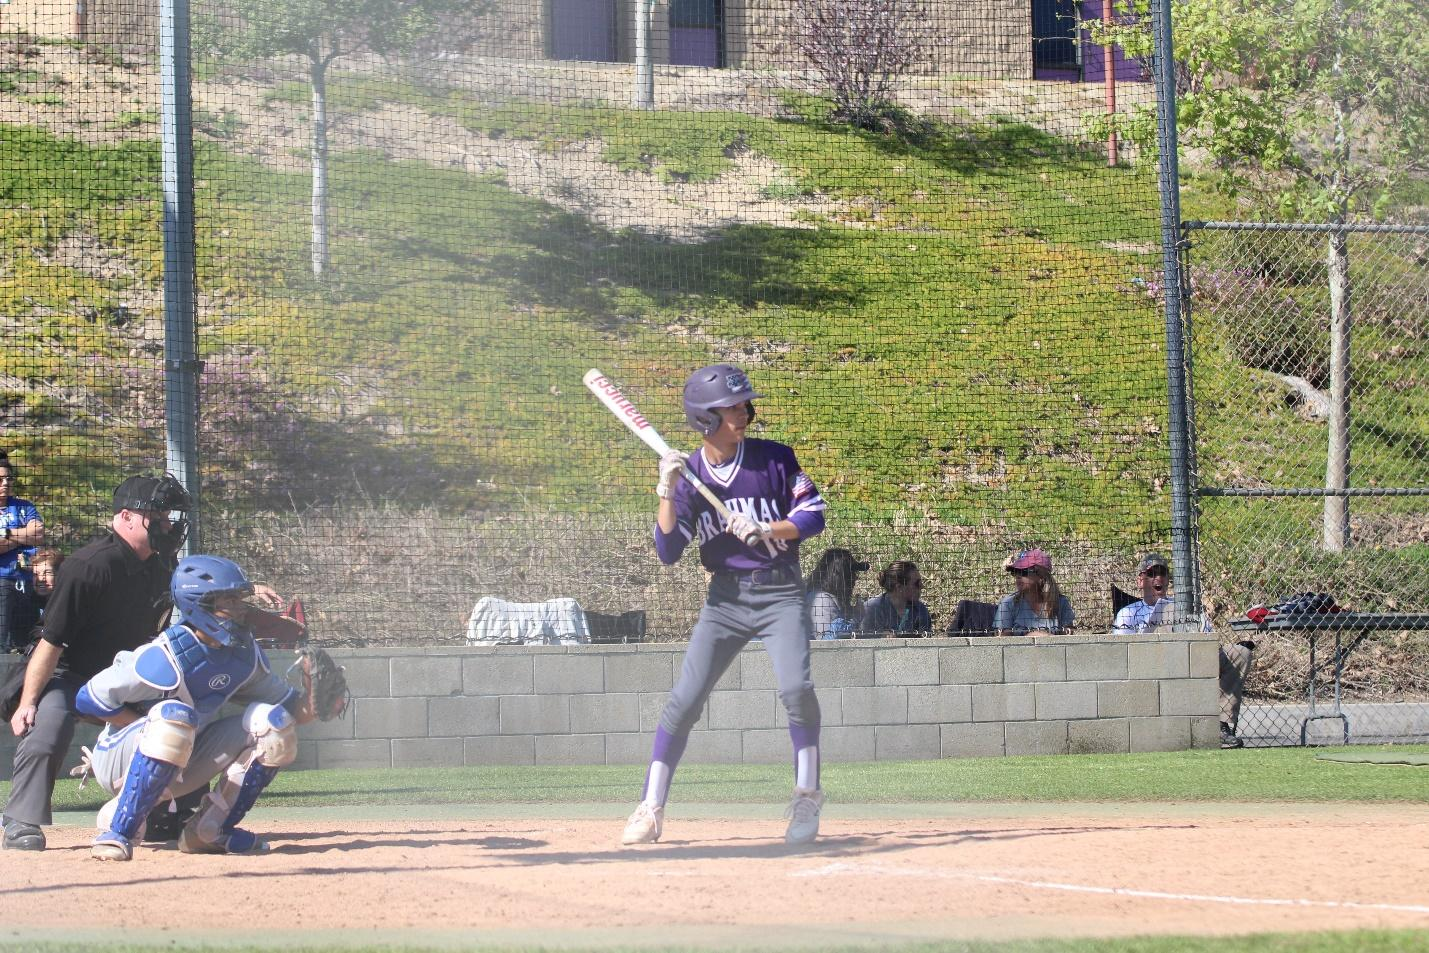 Senior Lachlan Durlach is maintaining a batting average of .350 for the season and plays the outfield for the Brahmas.